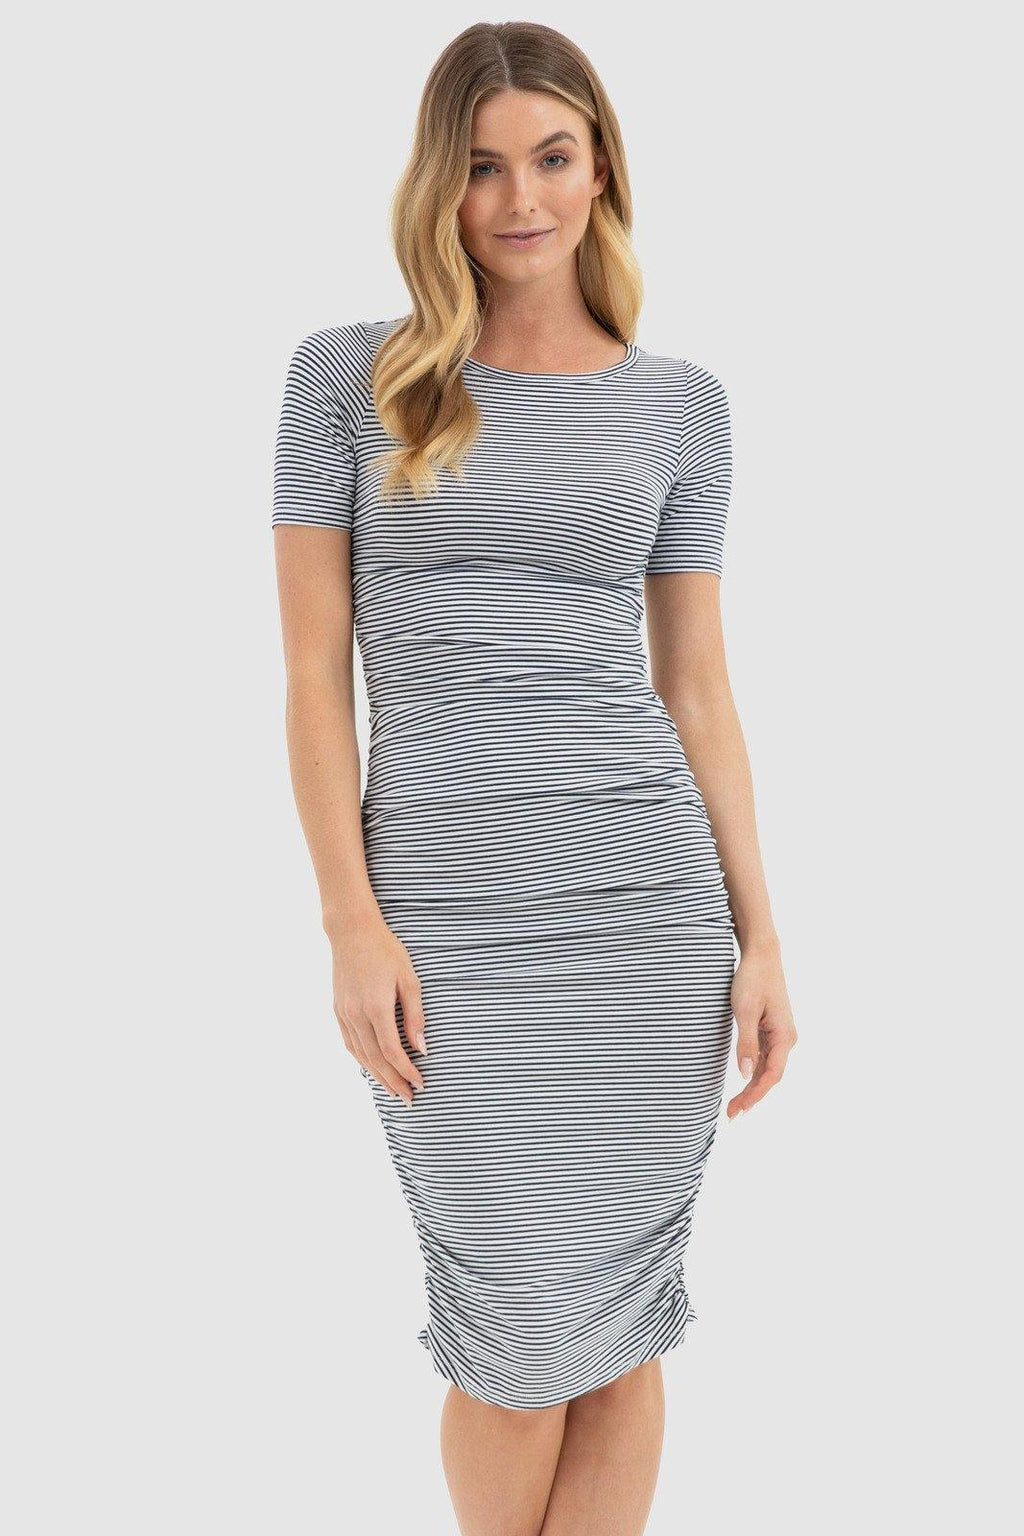 Jasper Ruched Dress - Navy + White Stripe - Bamboo Body | Buy Online at Weekends